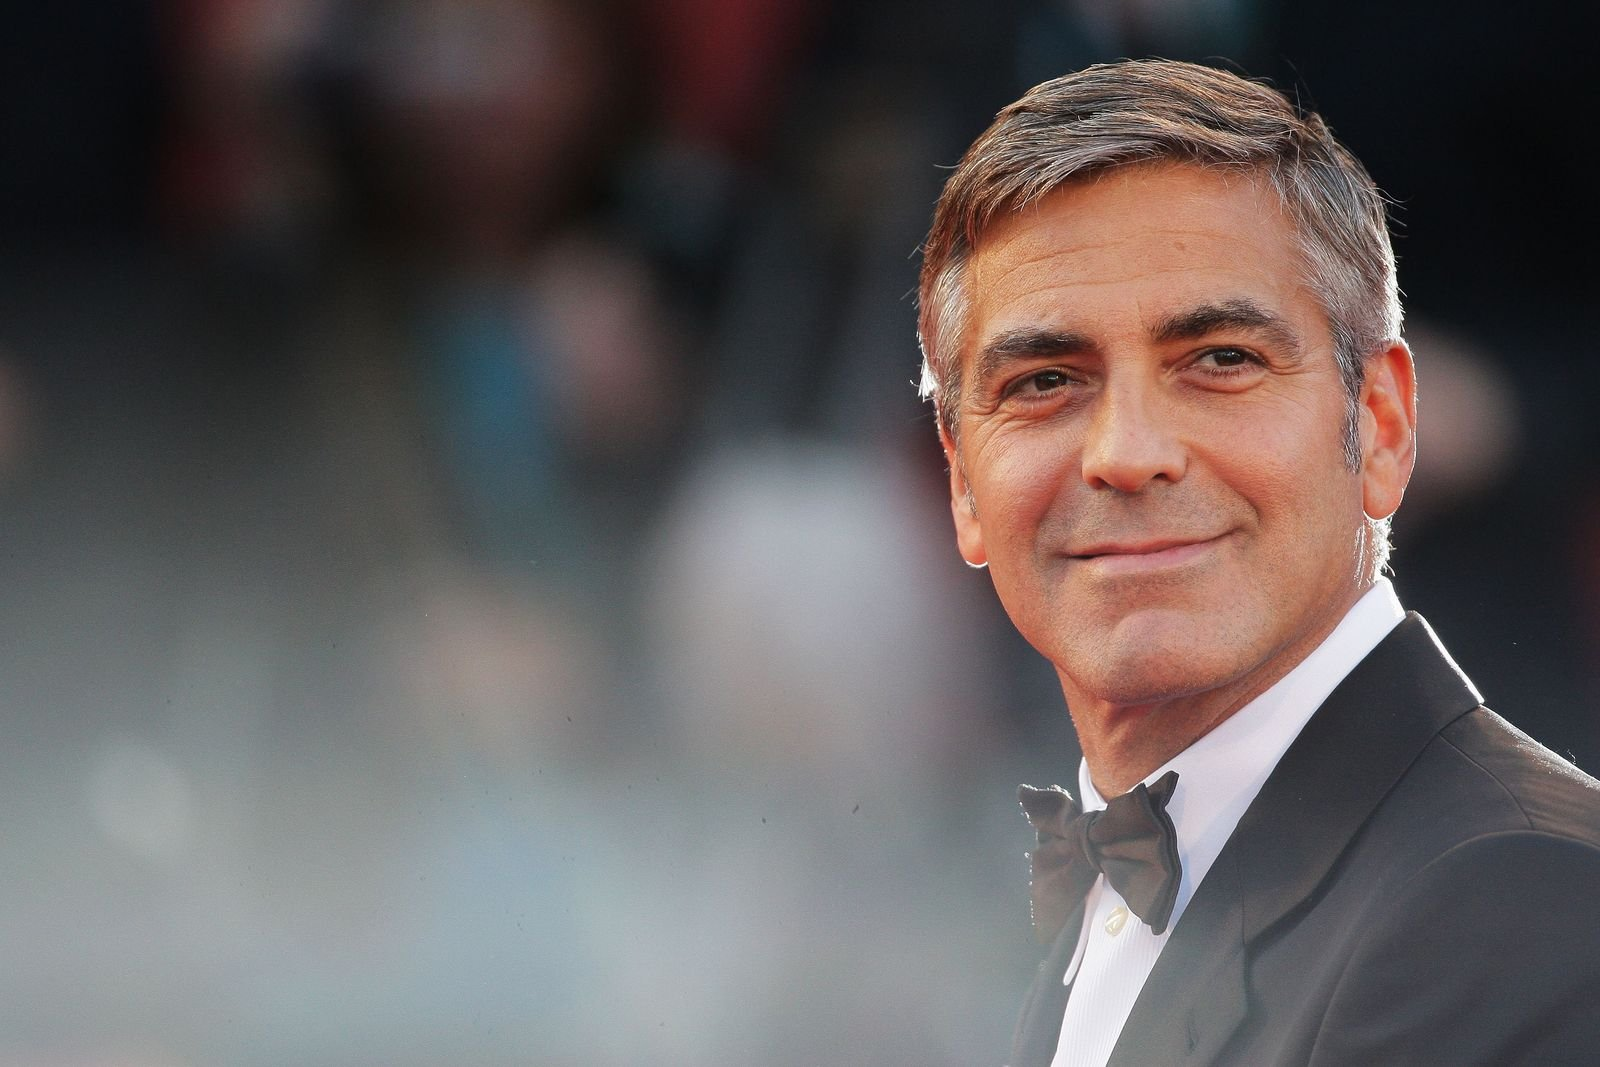 """George Clooney at""""The Men Who Stare At Goats"""" premiereduring the 66th Venice Film Festival on September 8, 2009, in Venice, Italy   Photo:Gareth Cattermole/Getty Images"""